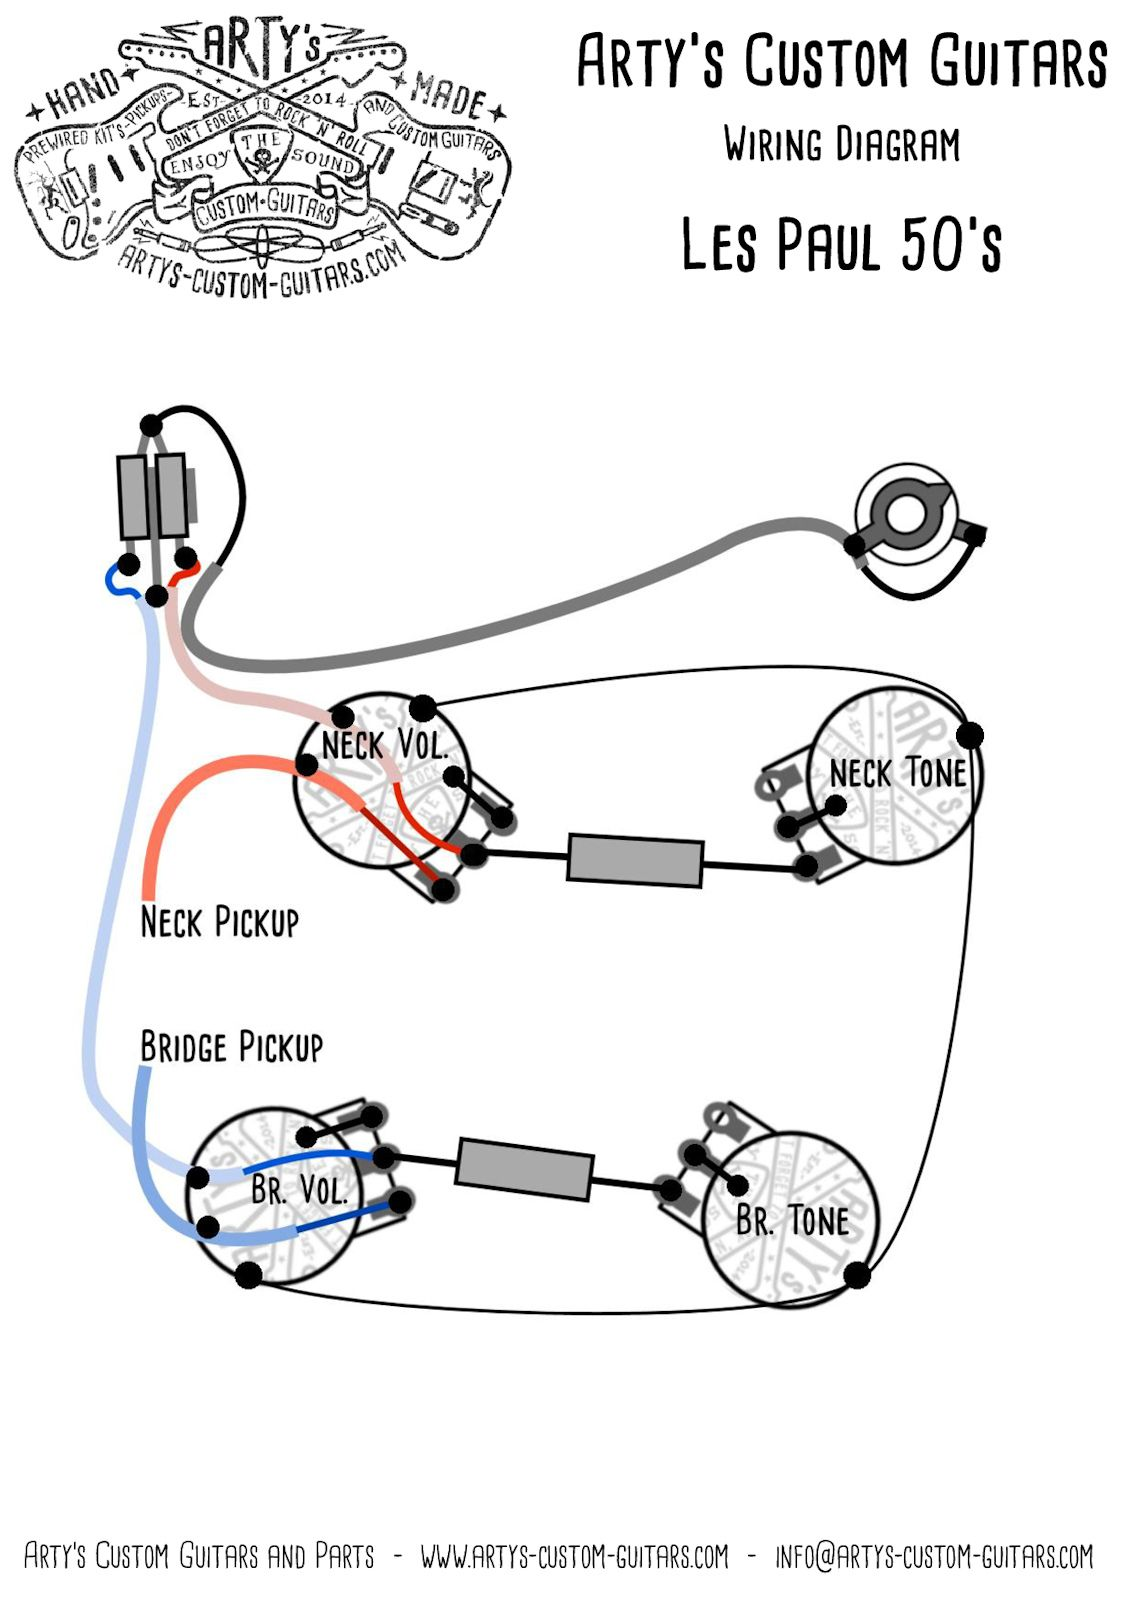 hight resolution of arty s custom guitars wiring diagram plan les paul assembly harness